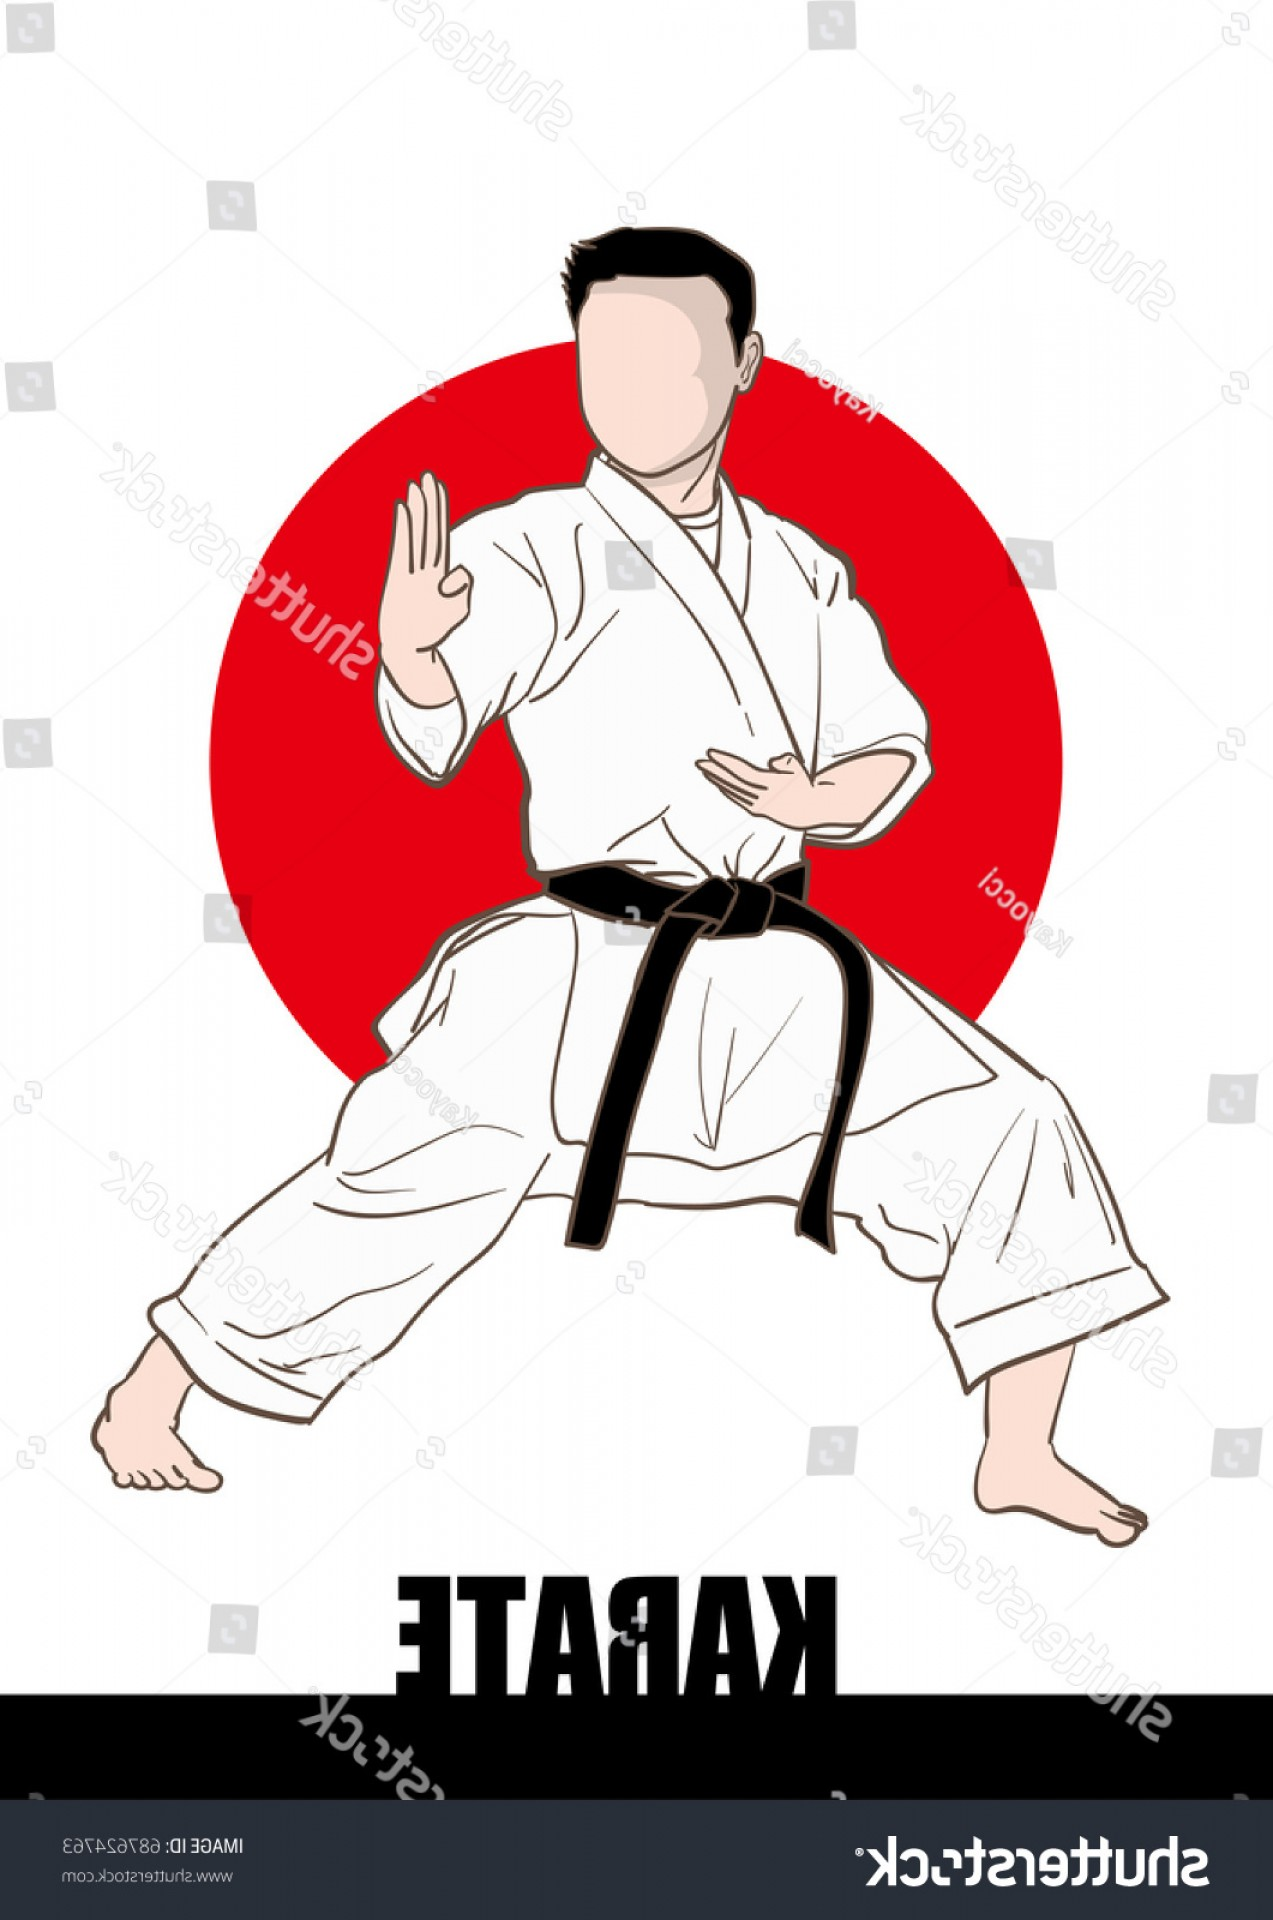 Karate Vector: Karate Vector Material Japanese Culture